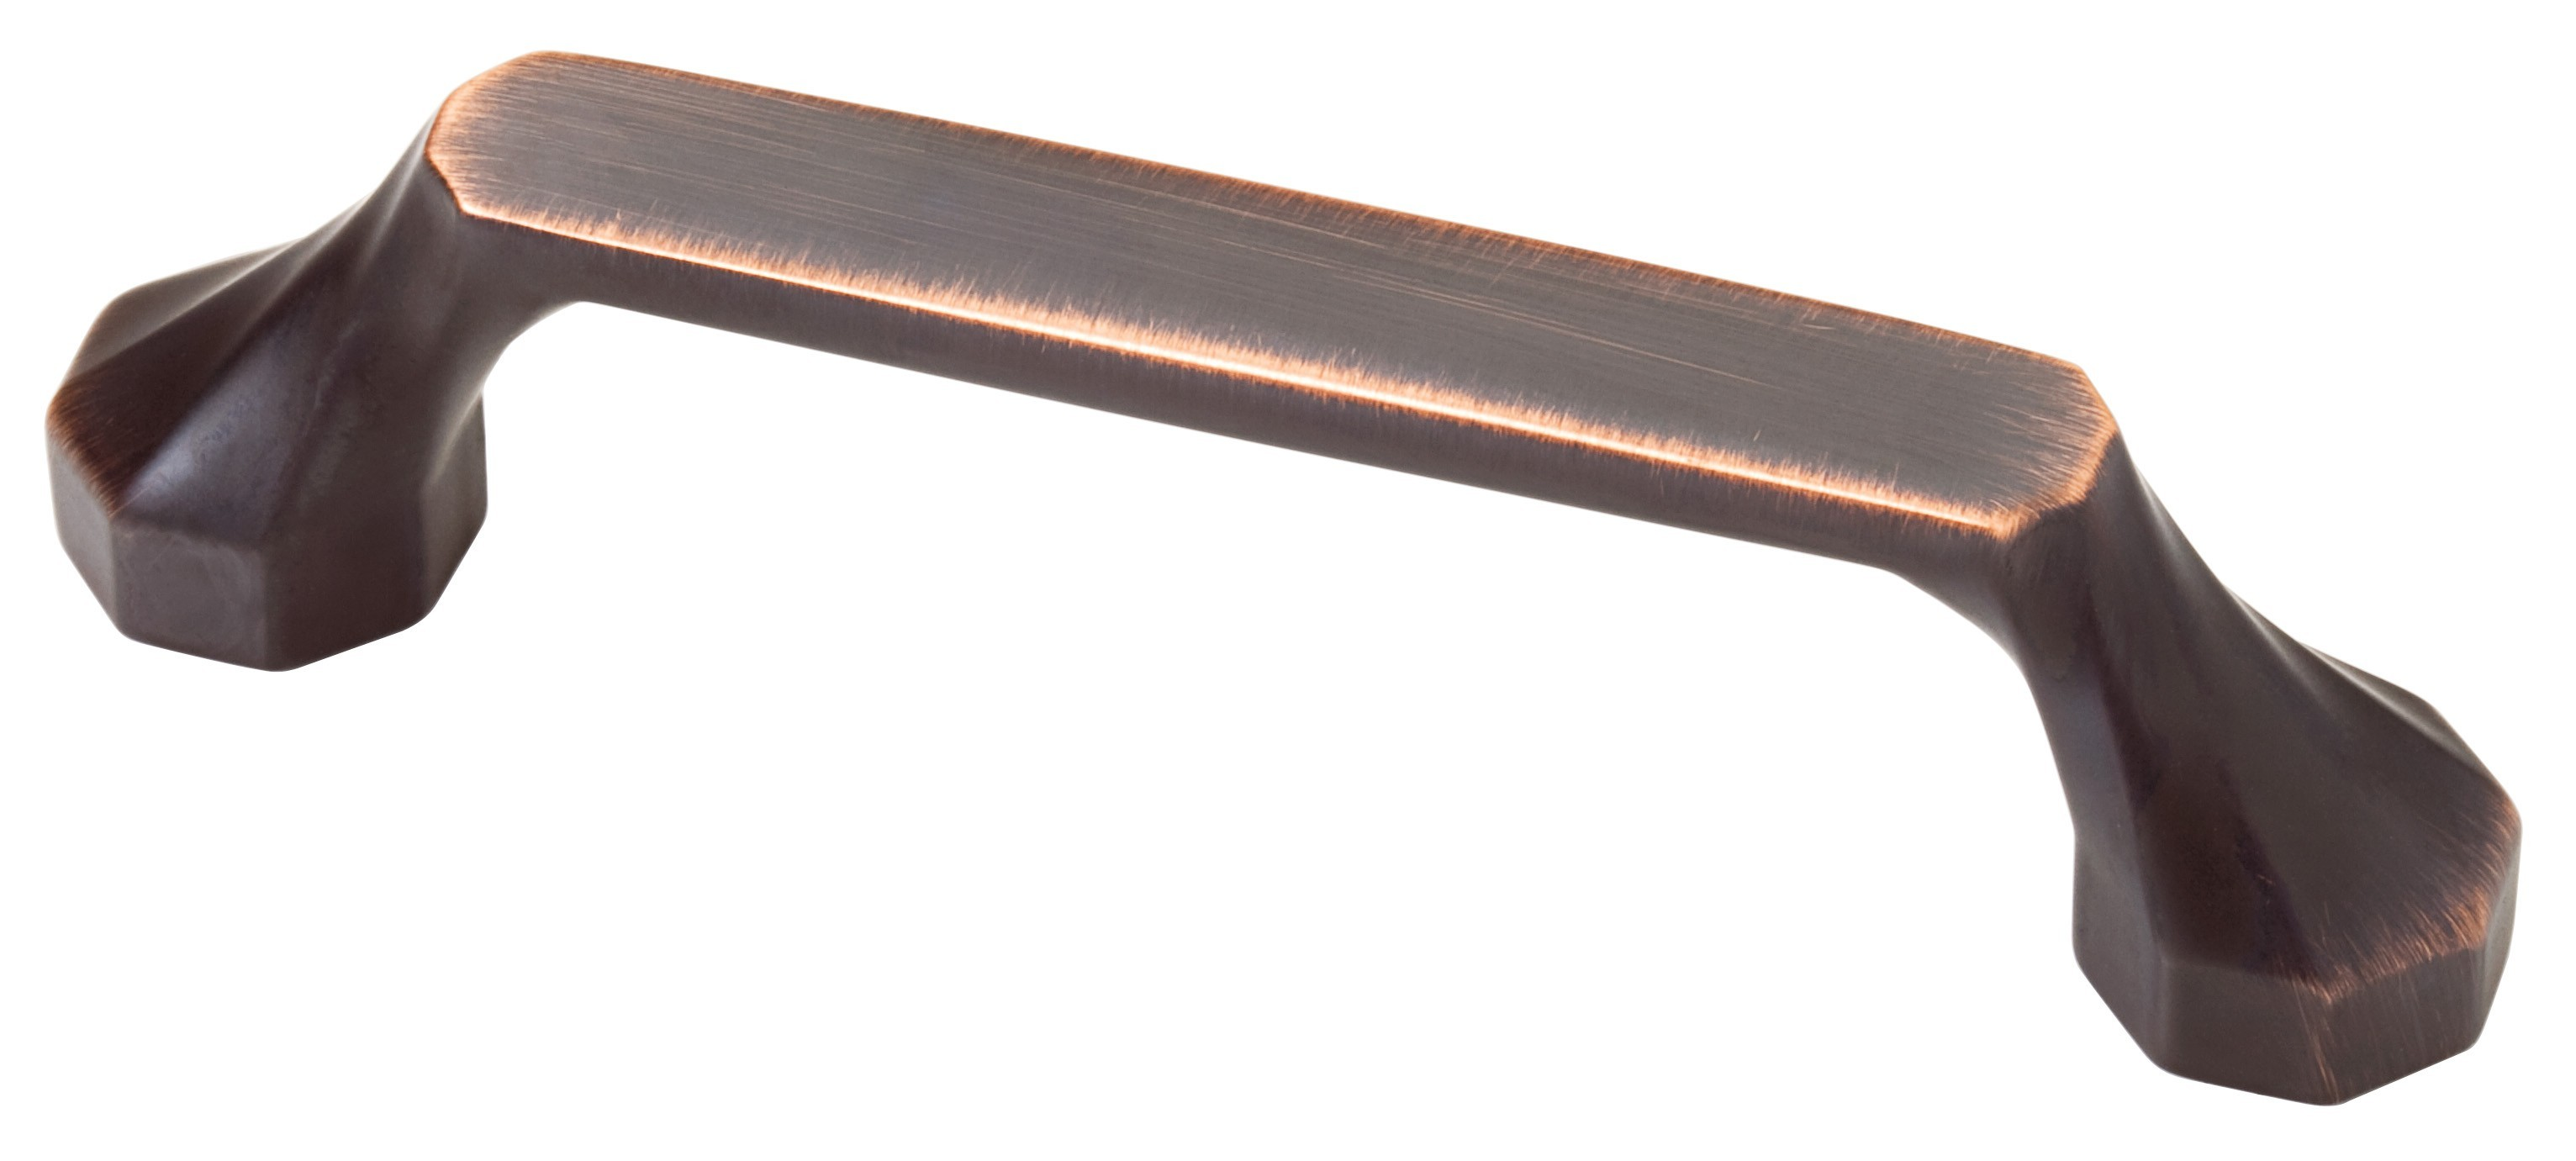 Liberty Hardware P20381-VBC-C, 3in / 96mm Dual Mount Octo Pull, Zinc Die Cast Pull, Bronze With Copper Highlights